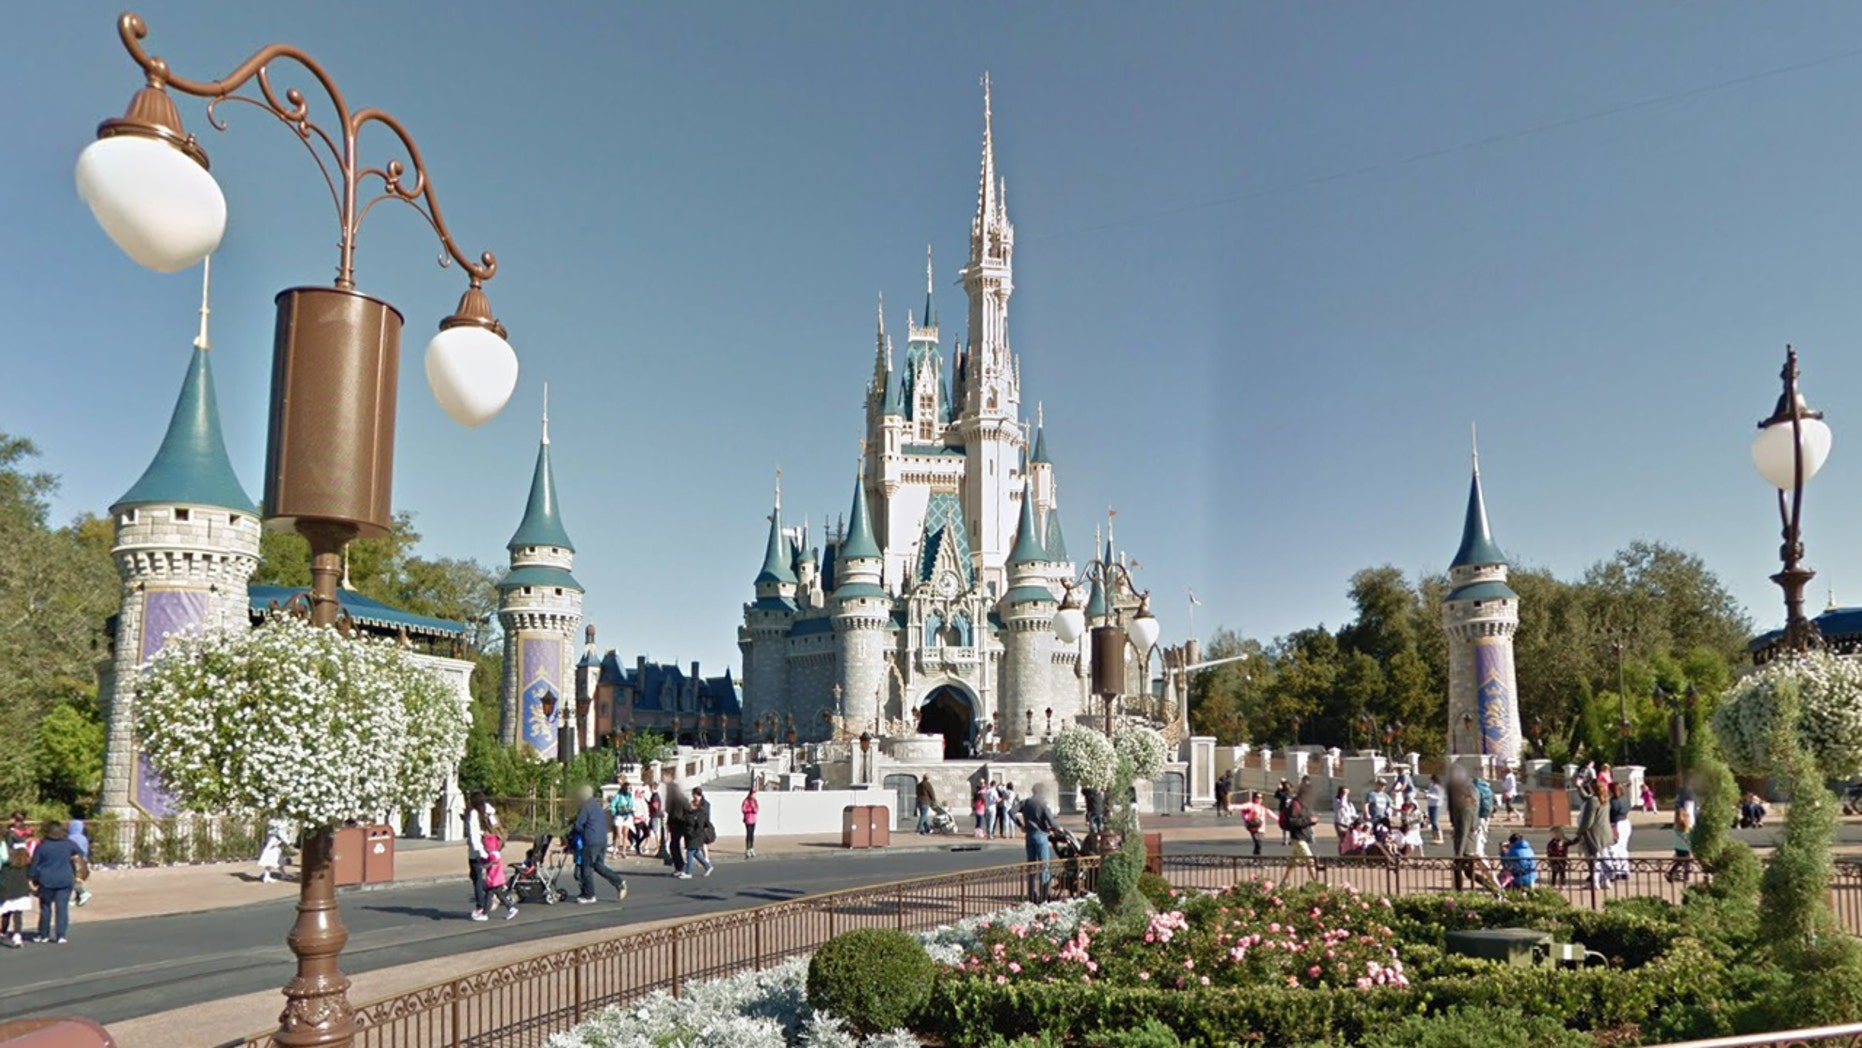 Disney's Magic Kingdom now serves alcohol at all its restaurants.